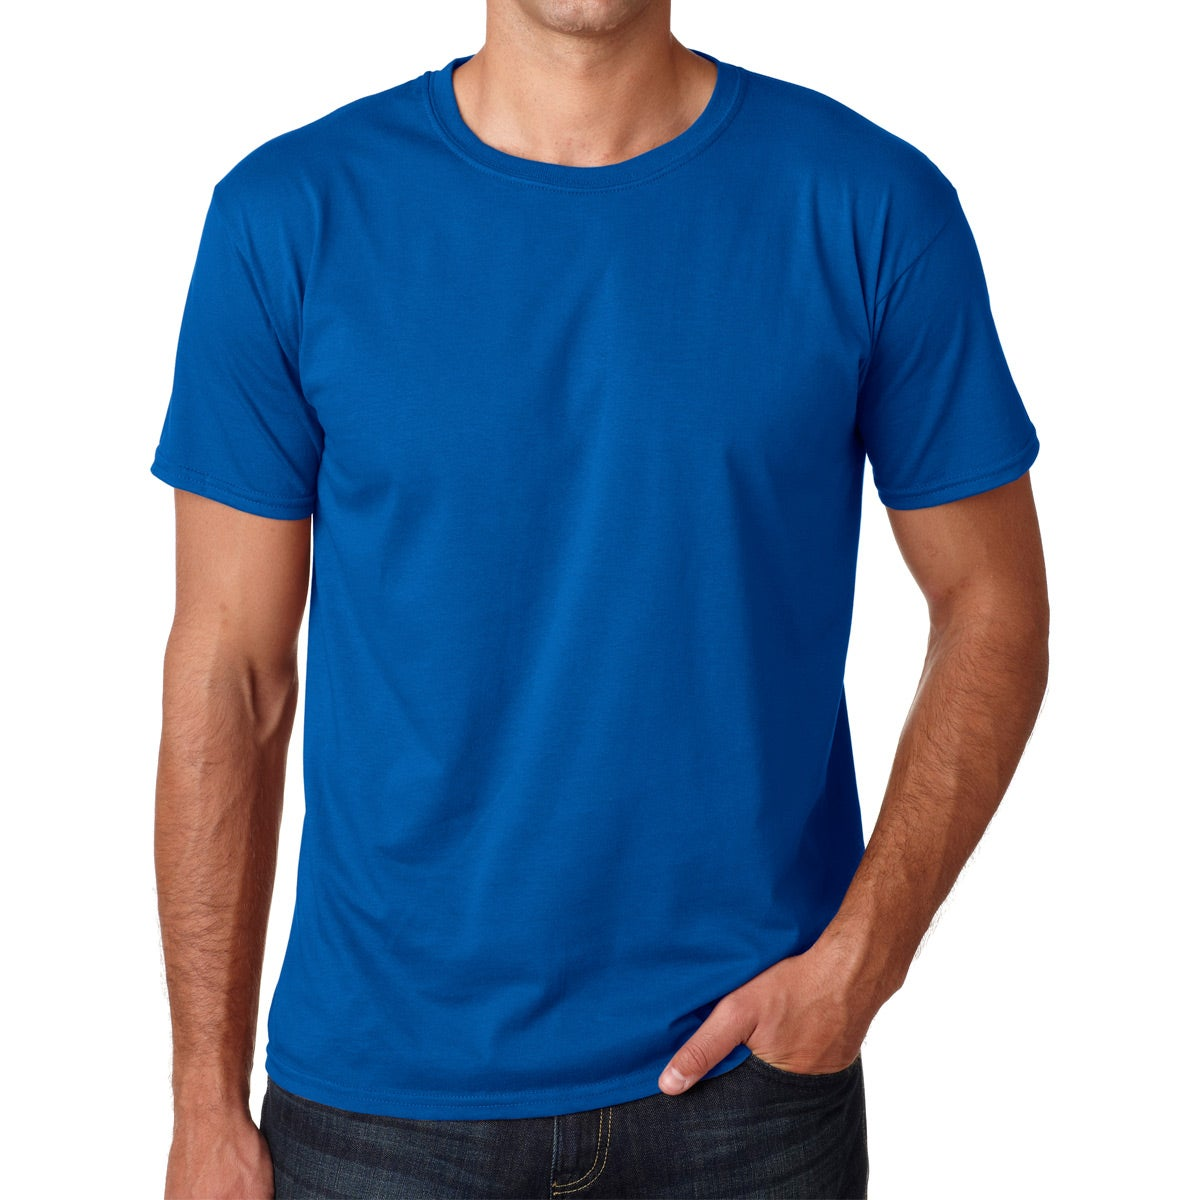 053b6396dc3e CLICK HERE to Order Colors Gildan Softstyle T-Shirts Printed with Your Logo  for $6.07 Ea.